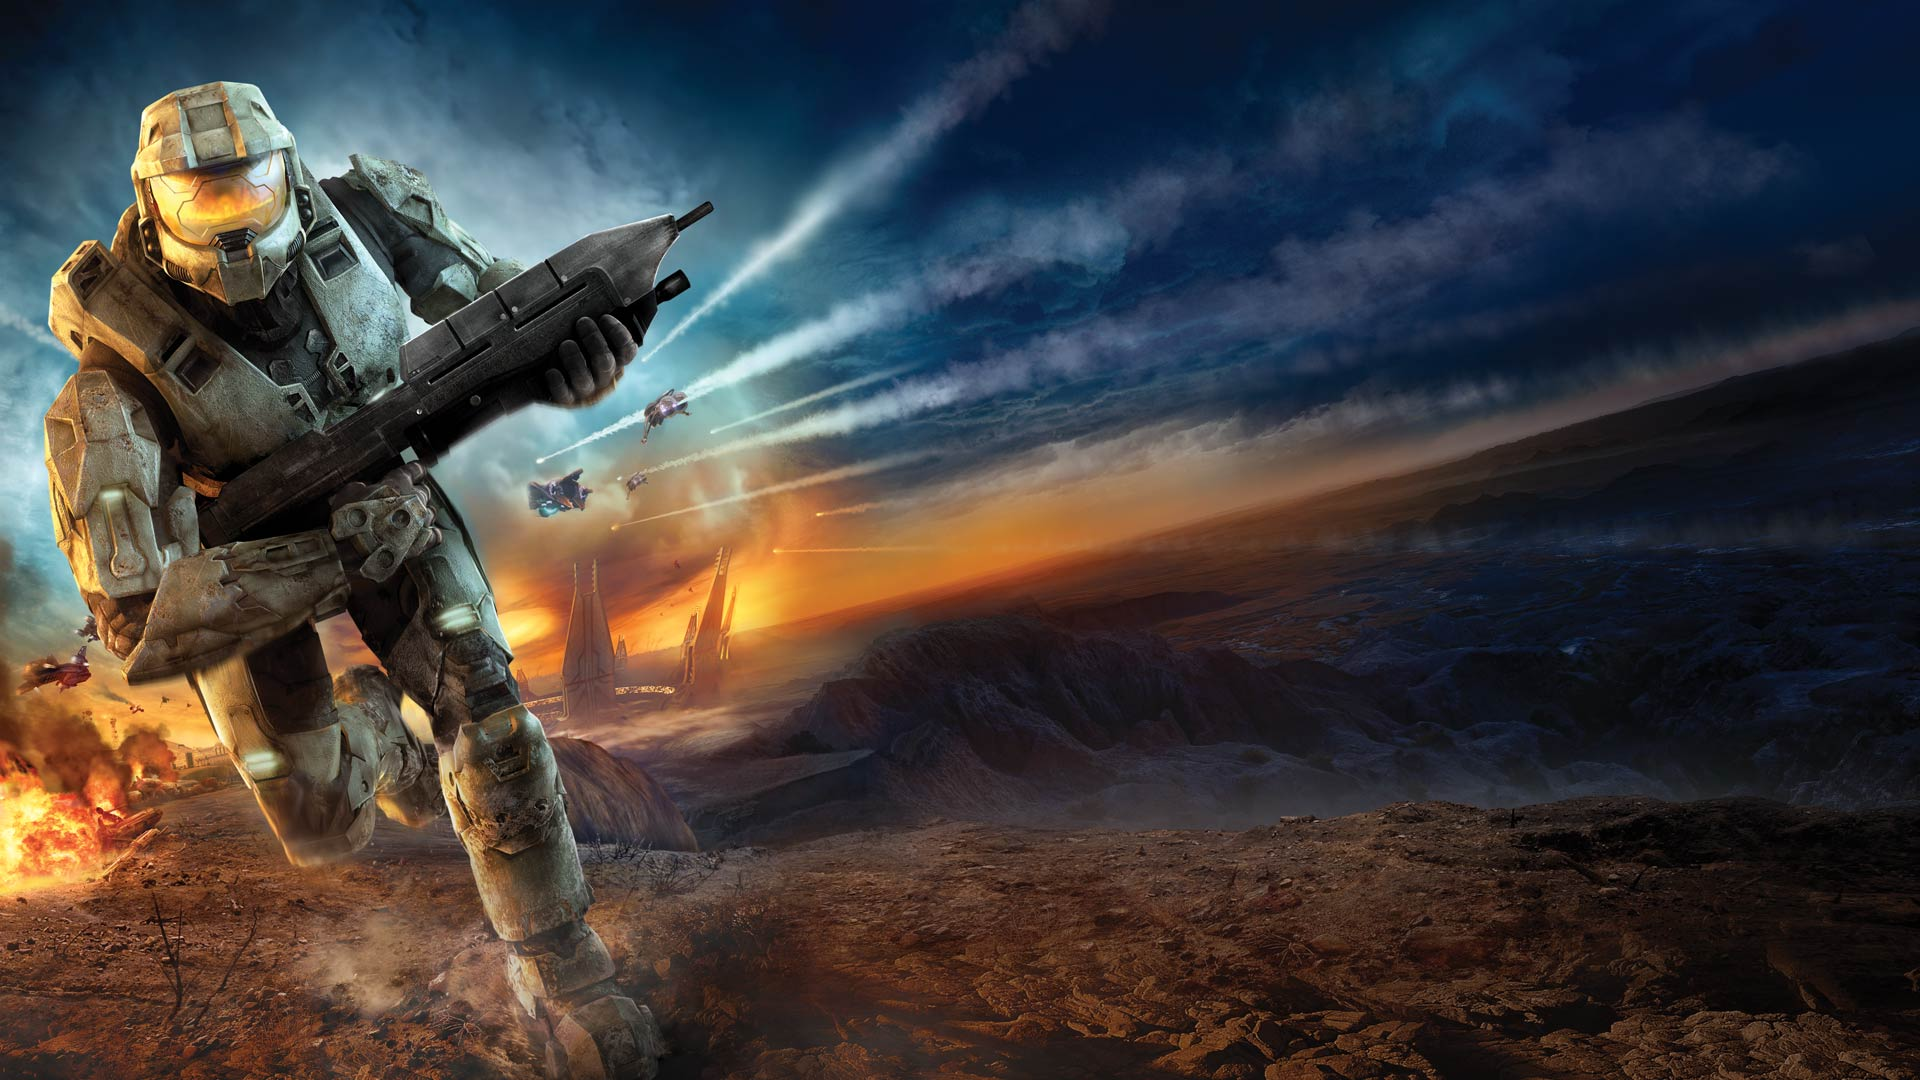 Halo Wallpaper Widescreen Downloads